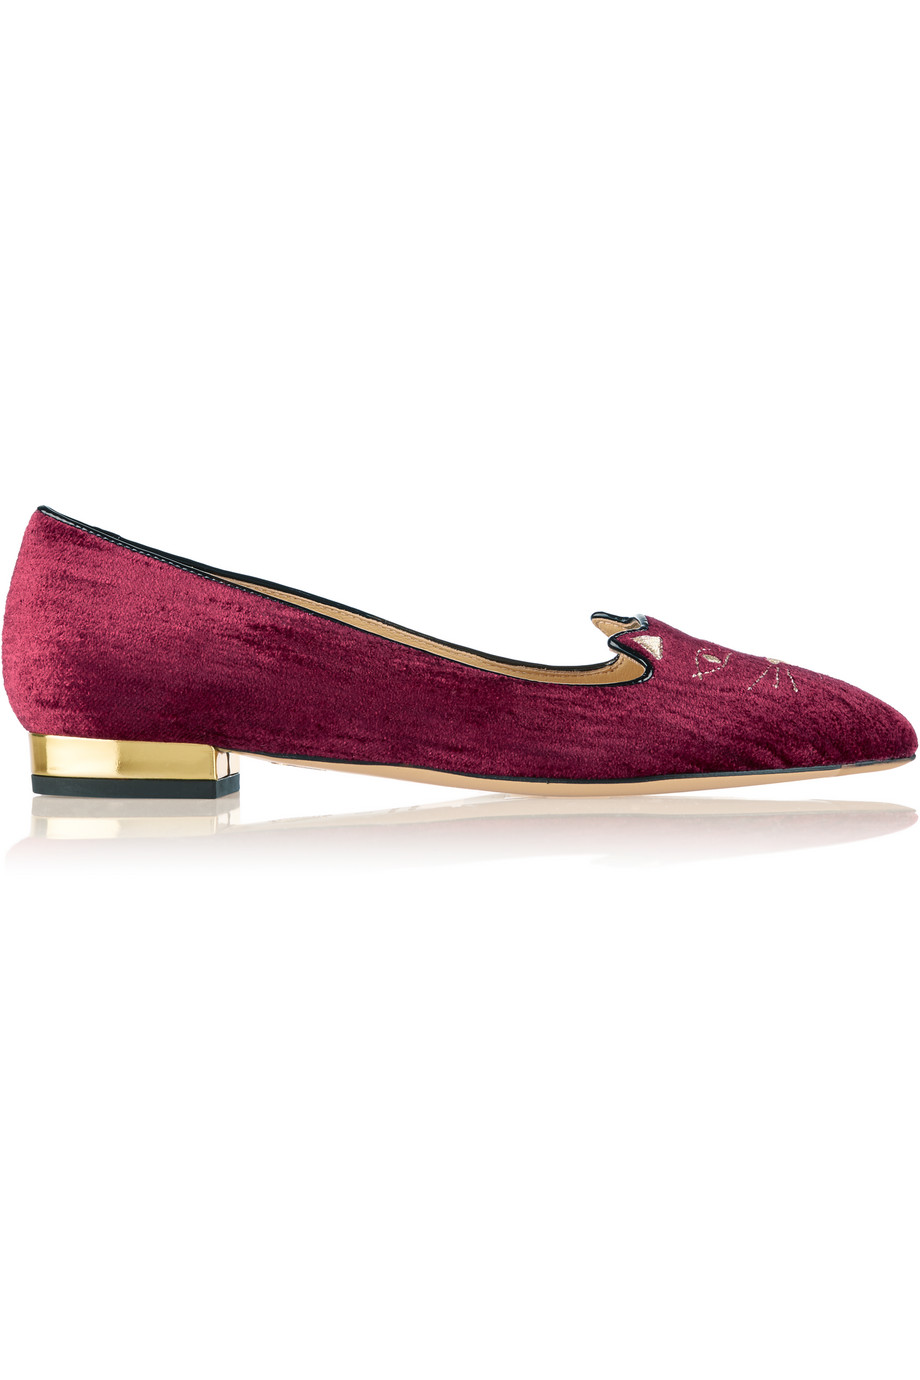 Charlotte Olympia Mid Century Kitty Embroidered Velvet Point-Toe Flats, Burgundy, Women's US Size: 5, Size: 35.5